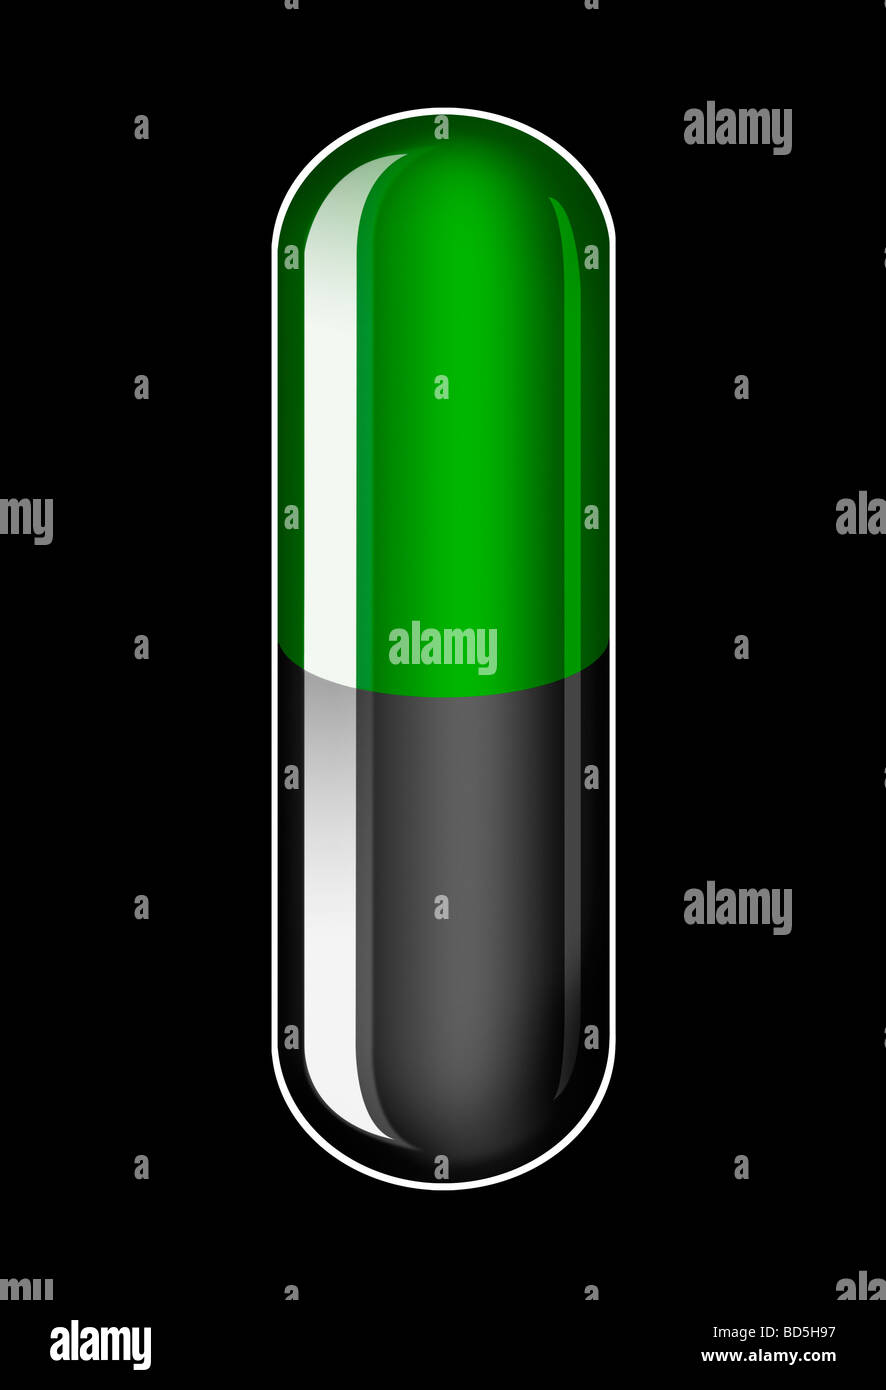 Illustration of a single generic Green and Black Capsule on a black background - Stock Image